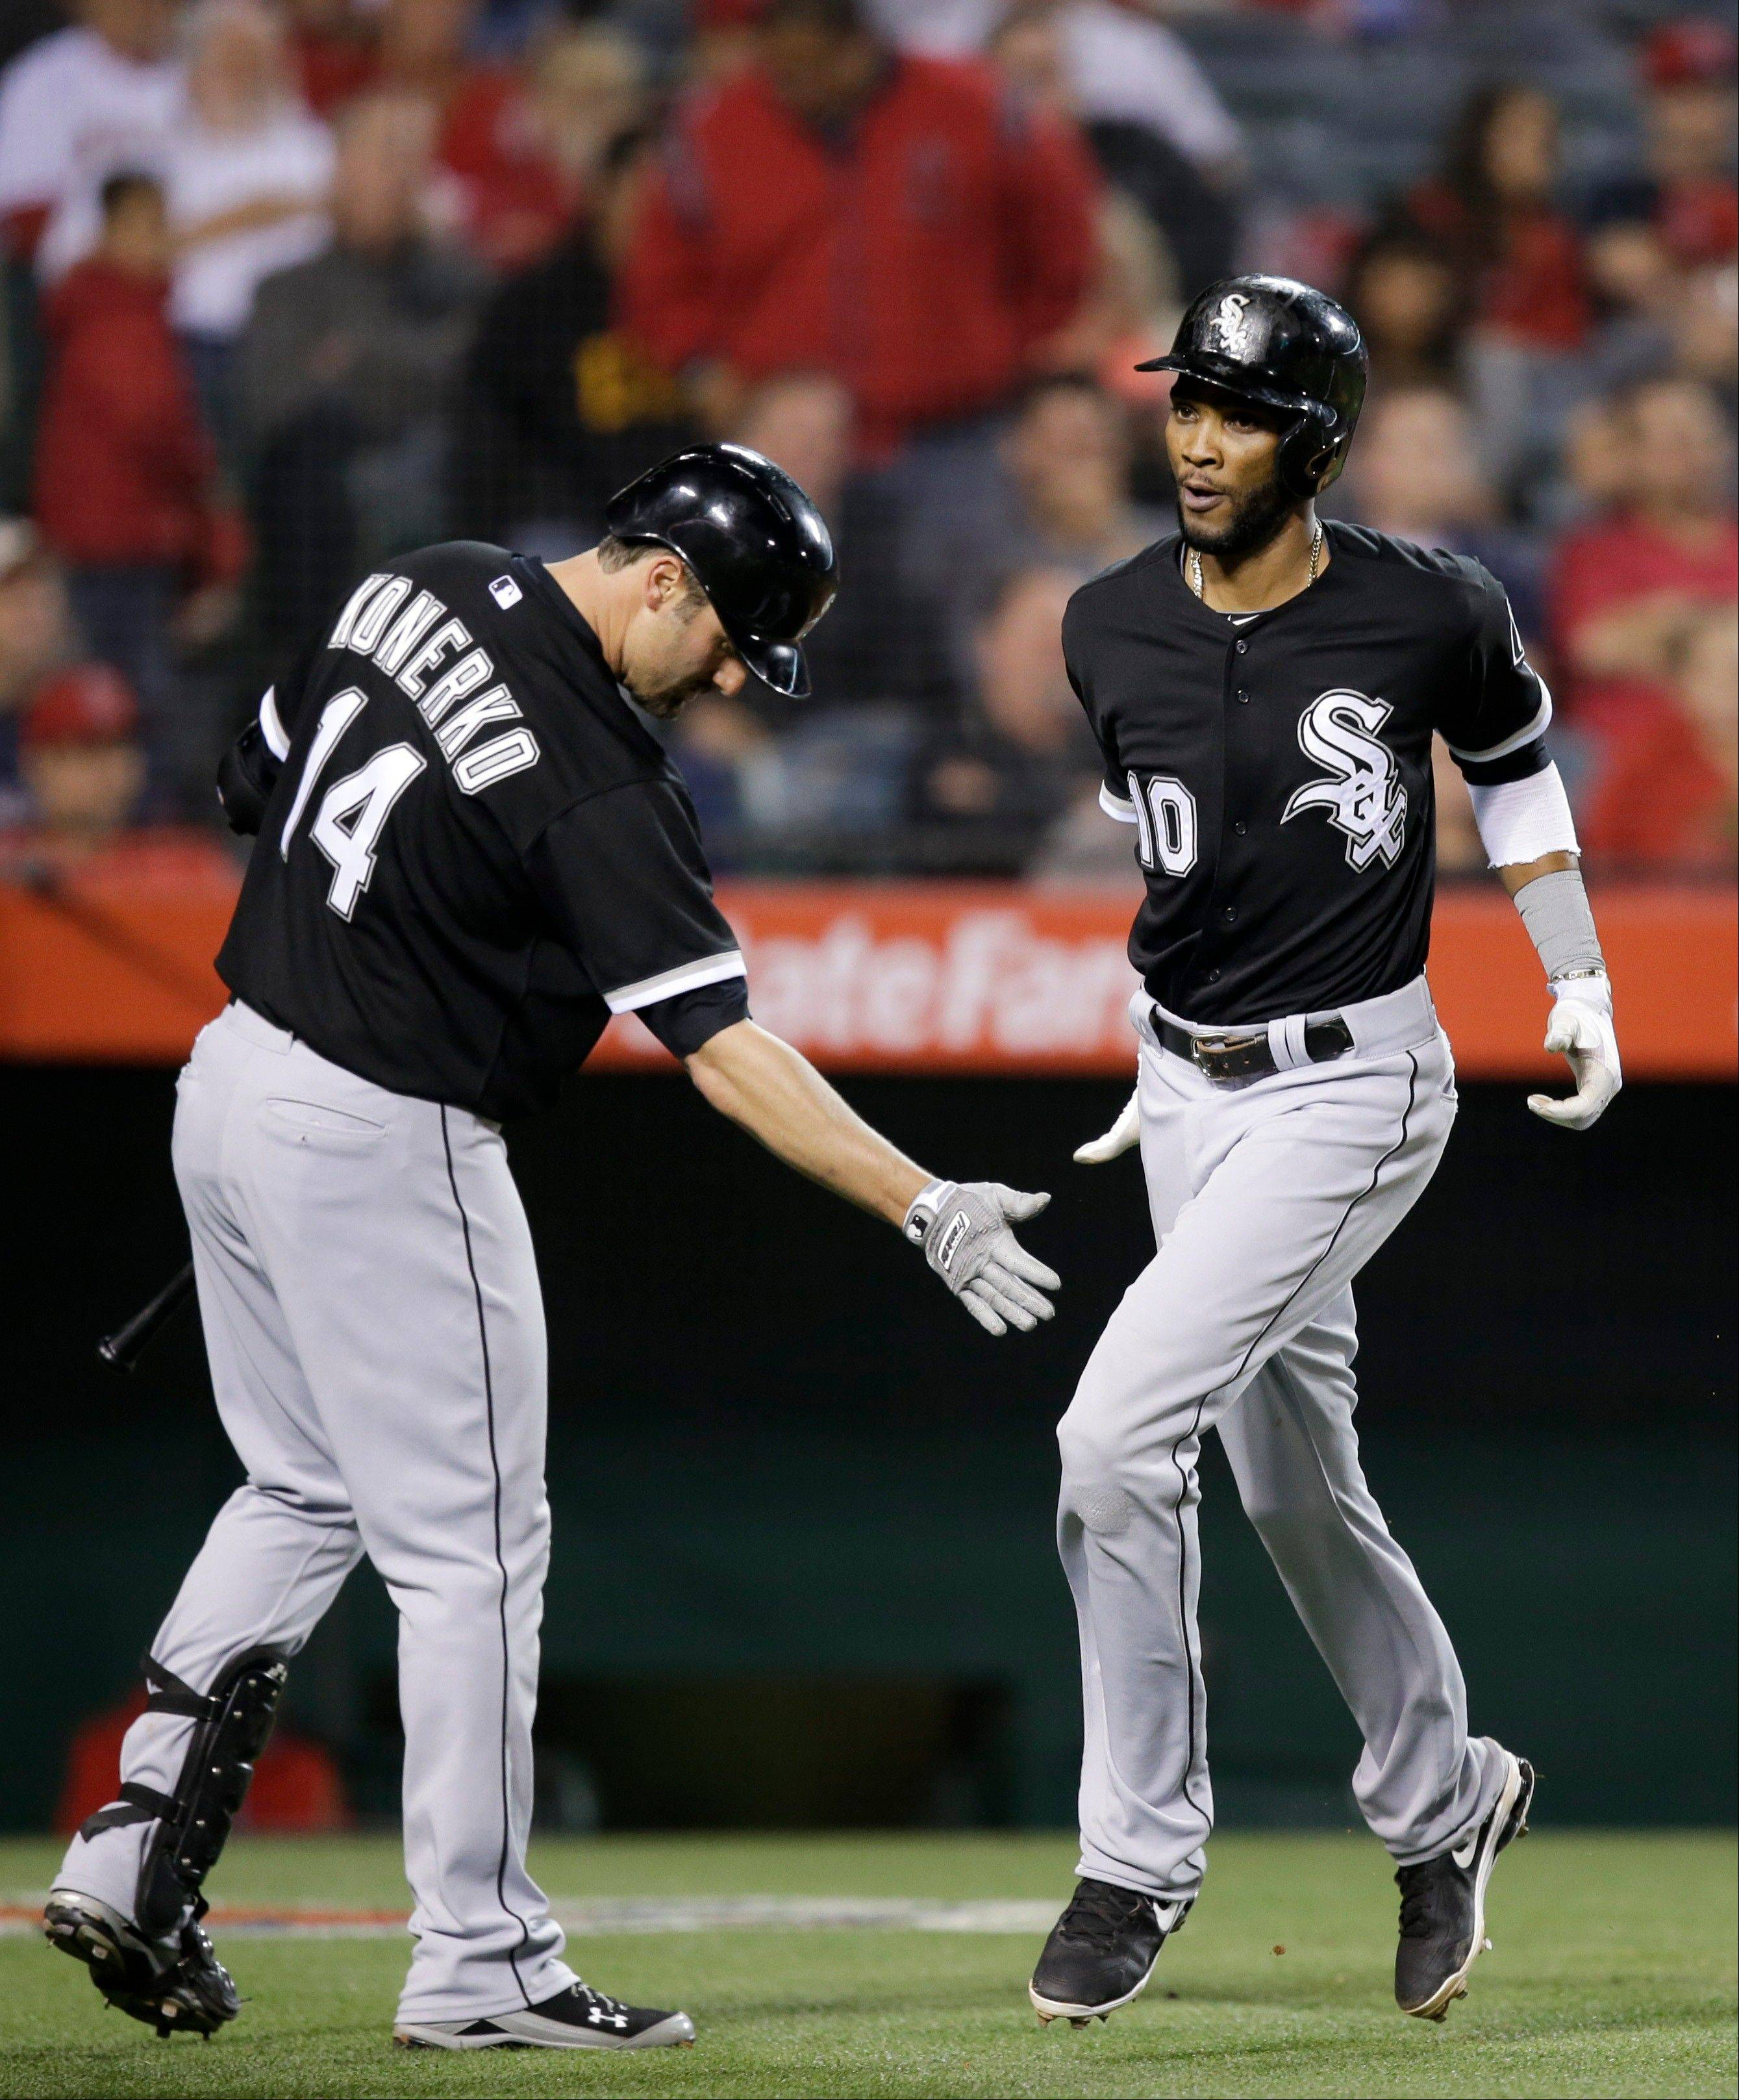 Alexei Ramirez is greeted by Paul Konerko as he scores on a single by Adam Dunn during the White Sox' 3-run eighth inning Thursday night.